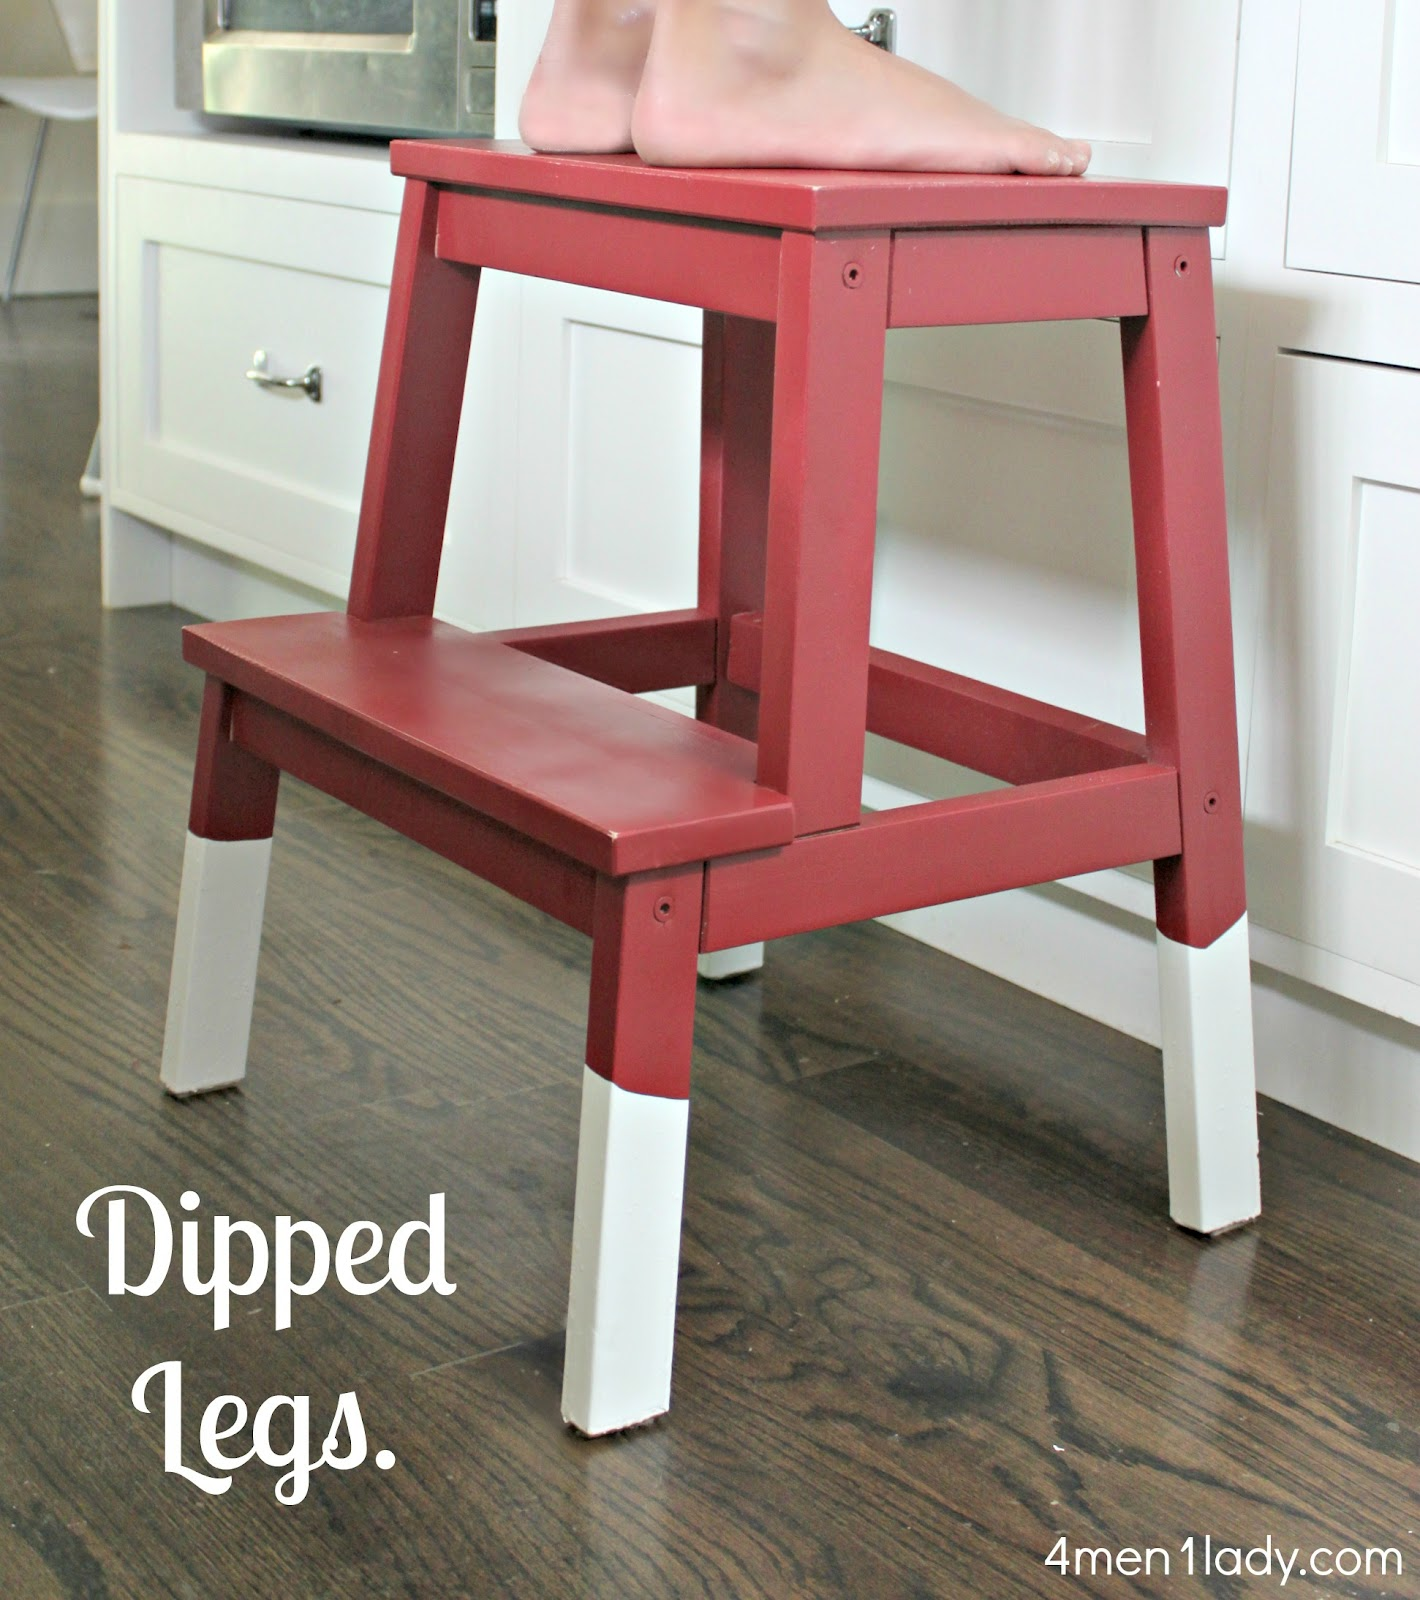 Groovy Dipped Legs Gmtry Best Dining Table And Chair Ideas Images Gmtryco